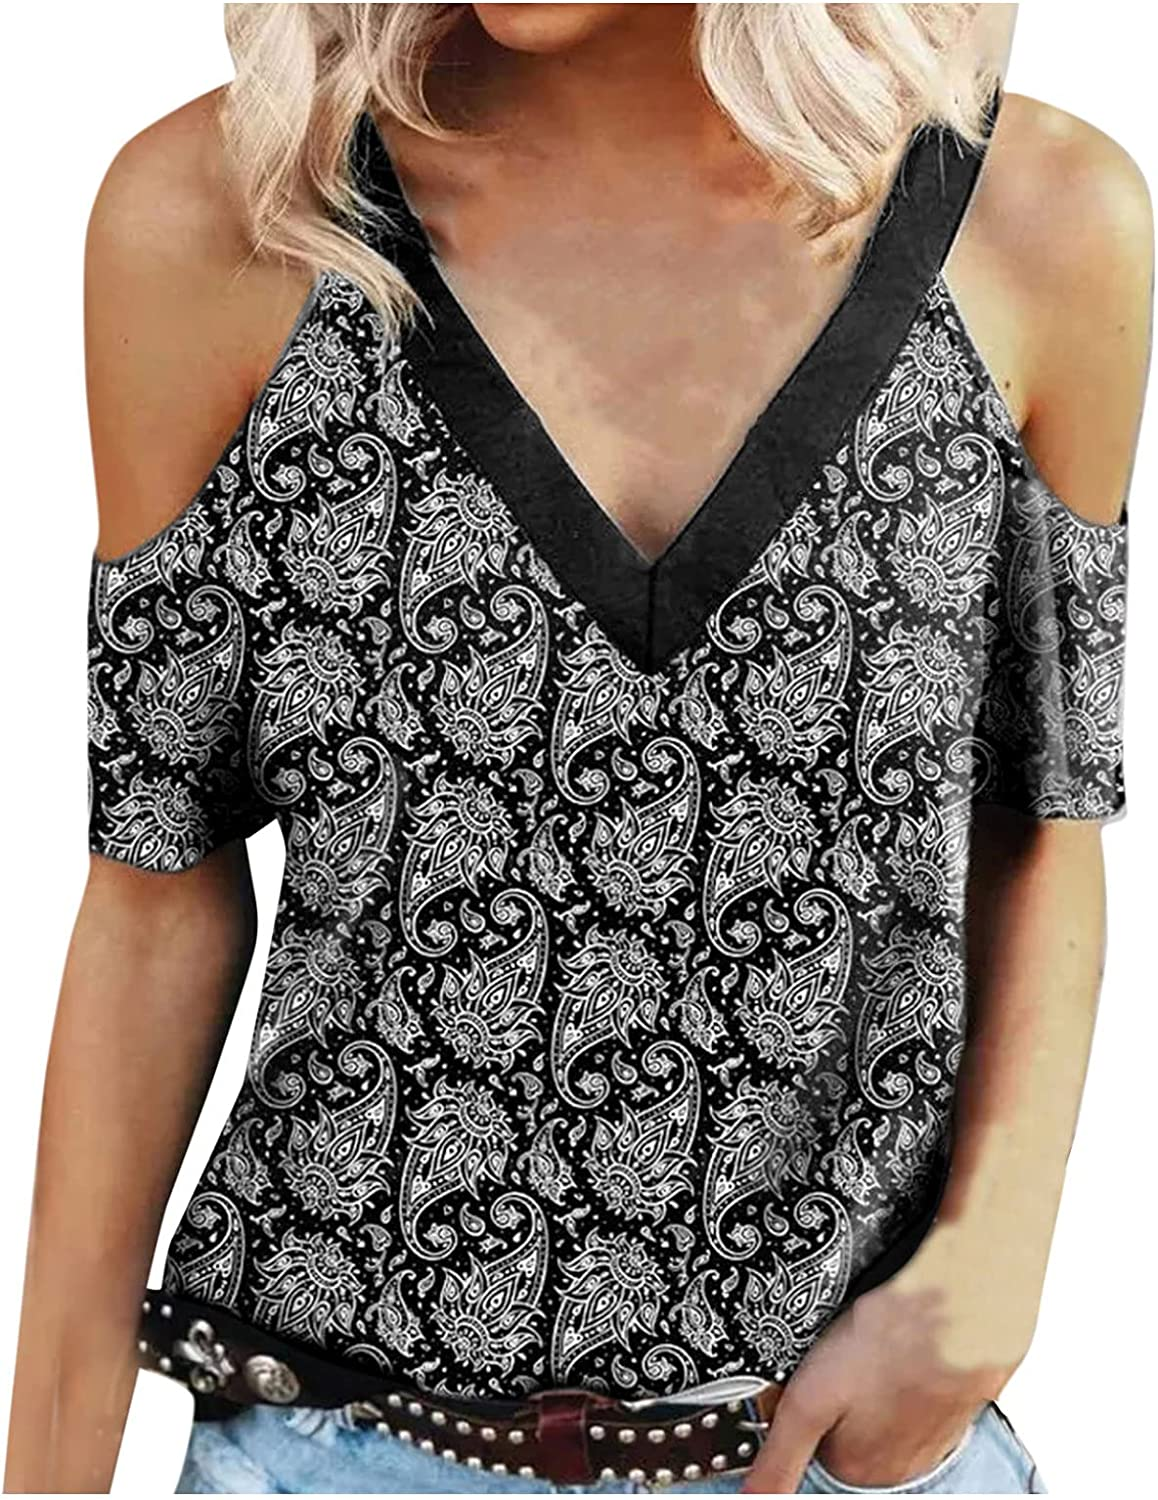 Womens Summer Tops Loose Fit, V Neck Shirts Cold Shoulder Tops Floral Printed Shirts Short Sleeve Blouses Tunic